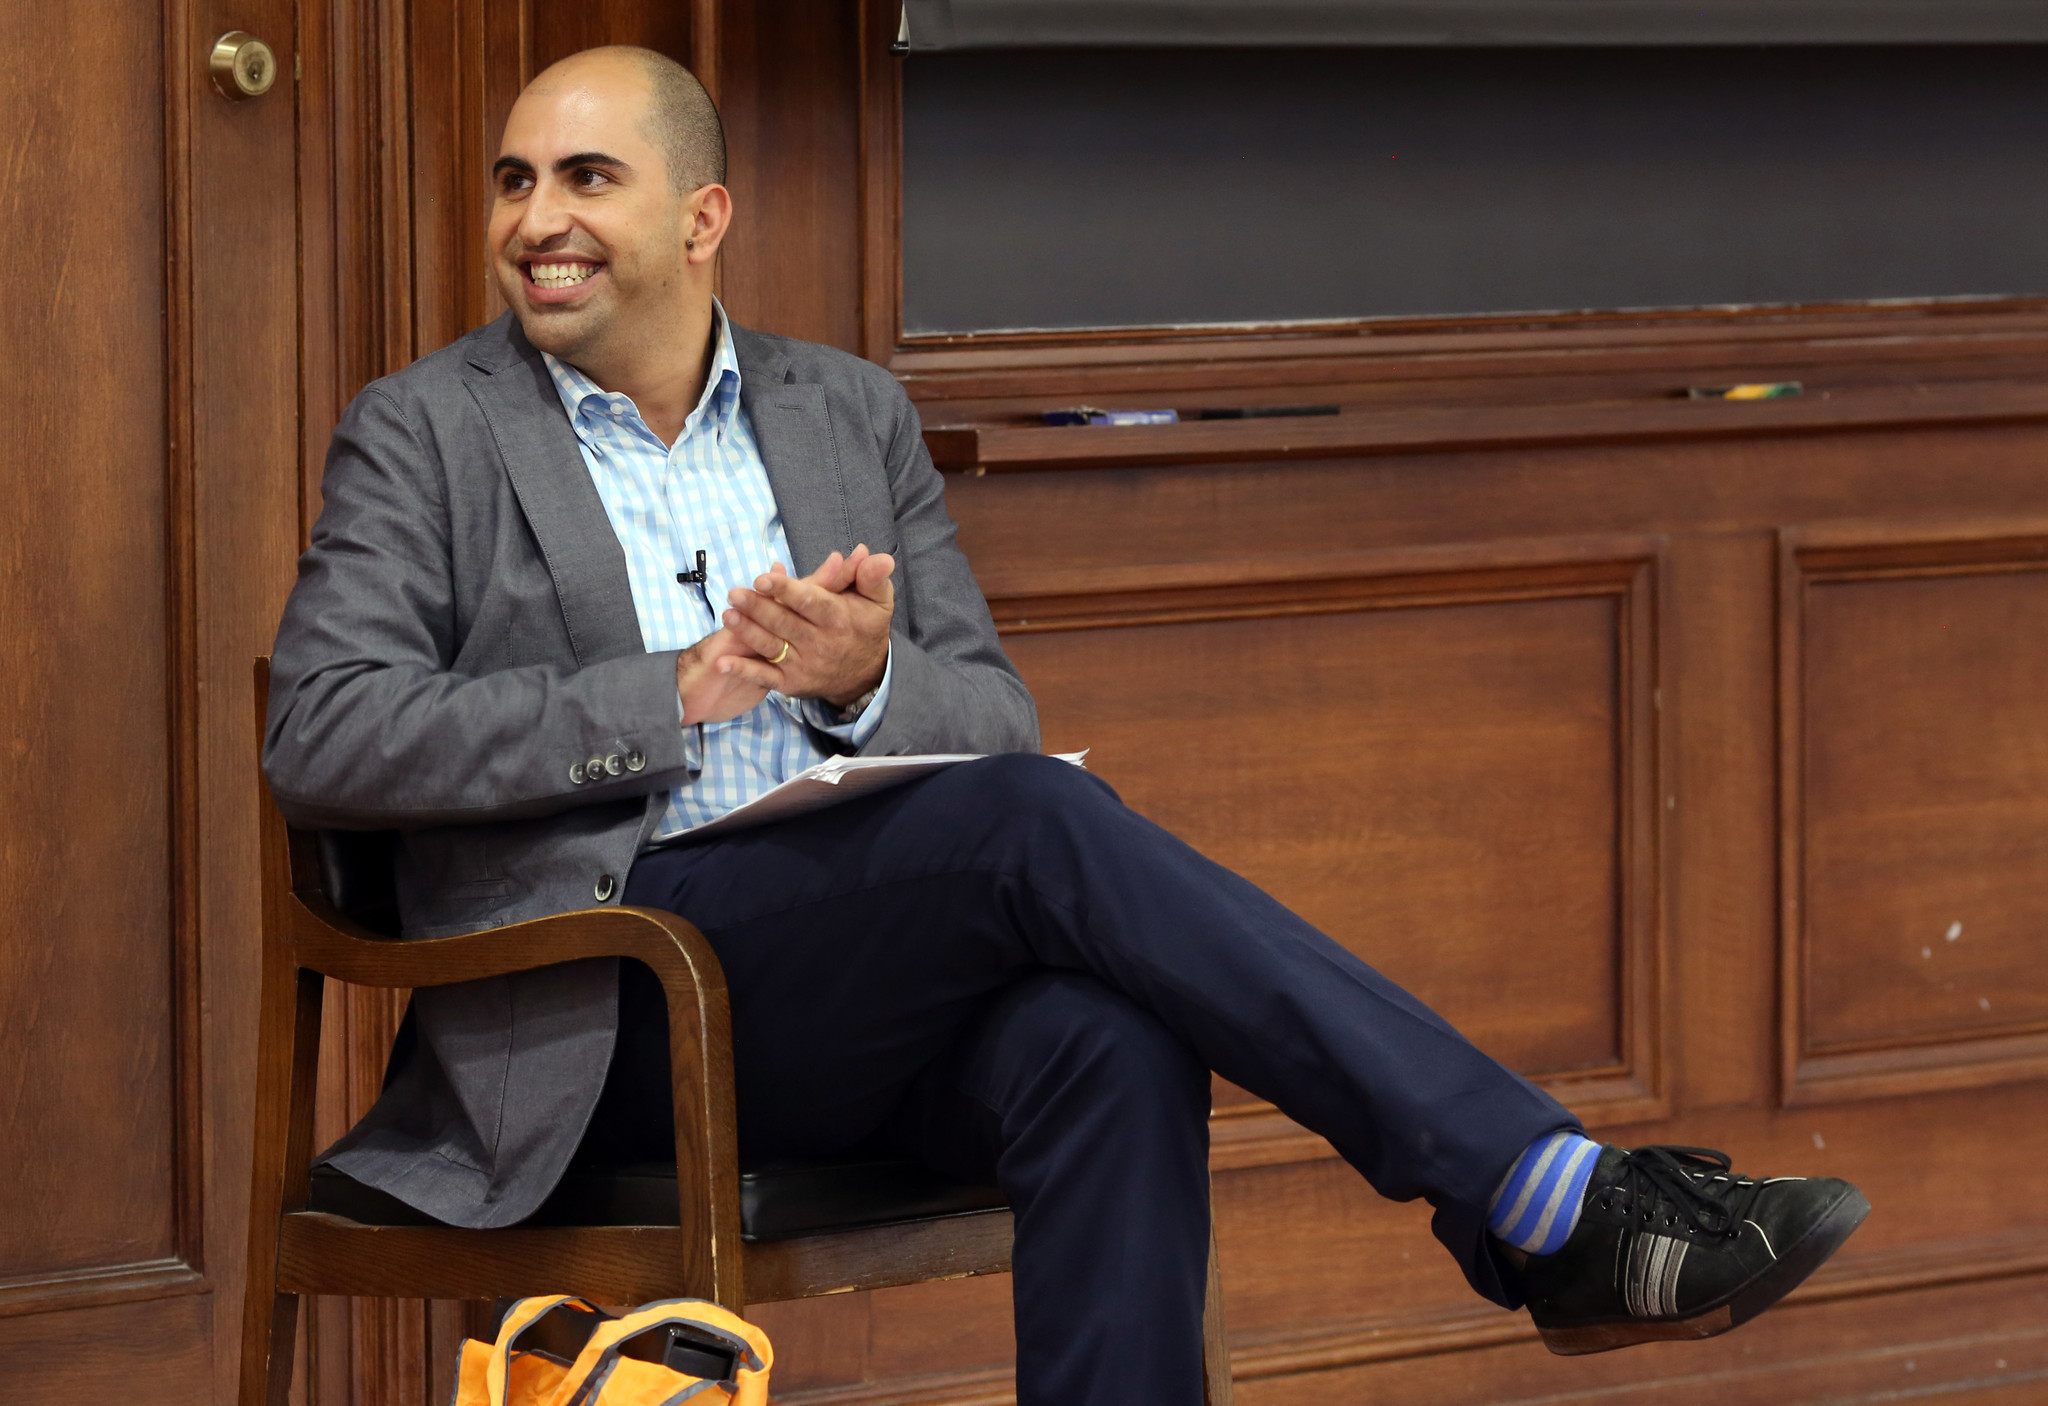 steven salaita sues u of i over lost job chicago tribune